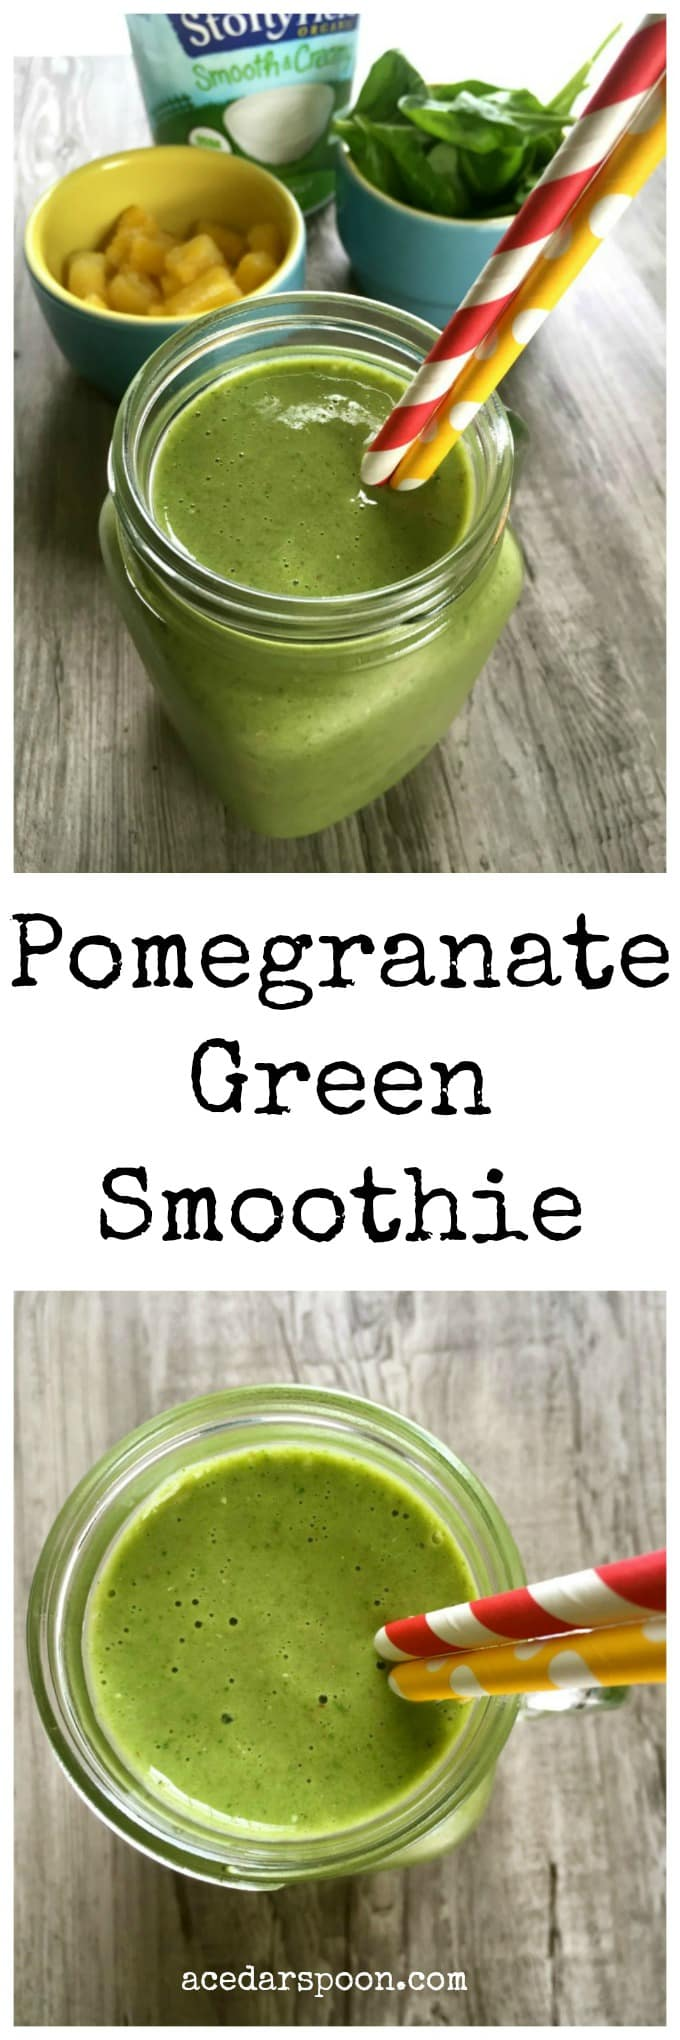 Pomegranate Green Smoothie + Blender Giveaway - A Cedar Spoon